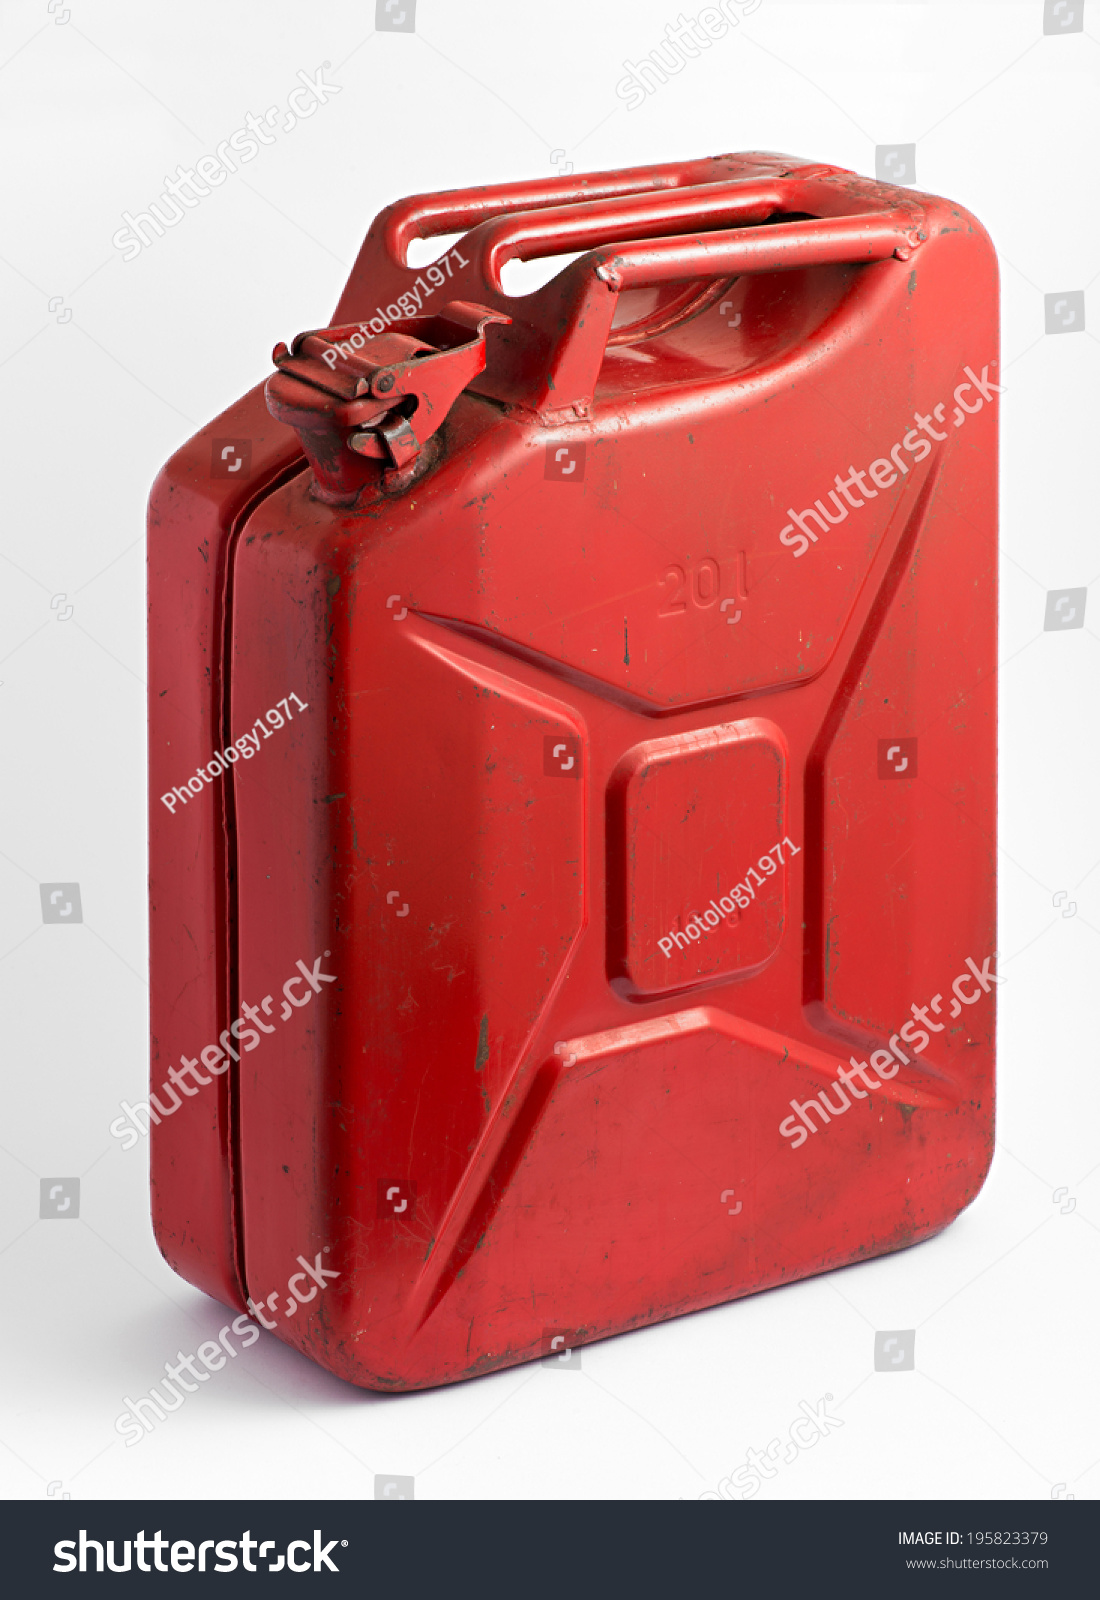 Red Metal Fuel Tank Or Jerry Can For Transporting And ...